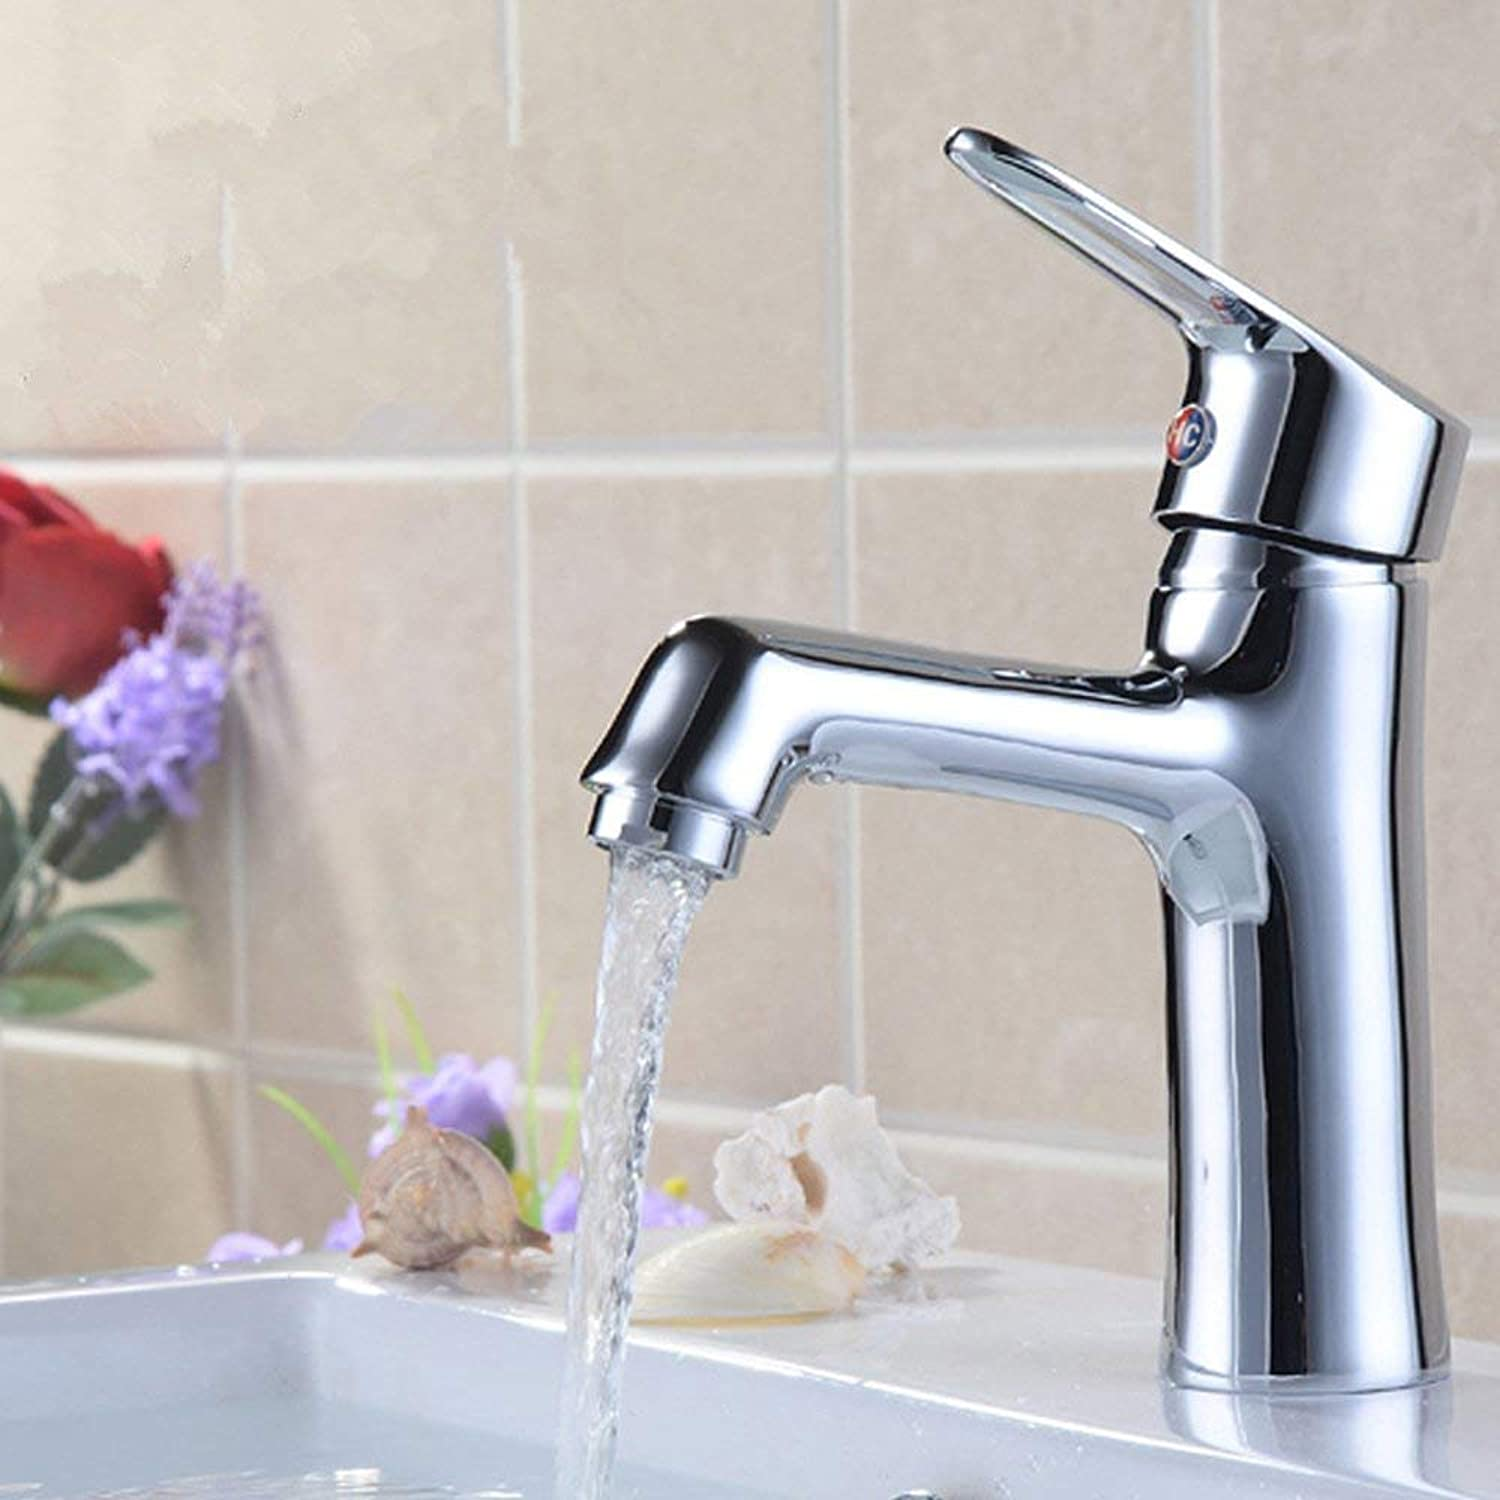 Mixing Valve of The hot and Cold Basin Faucet. Single Handle. Single Hole. Washing Your Bathroom. The Public tap Faucet